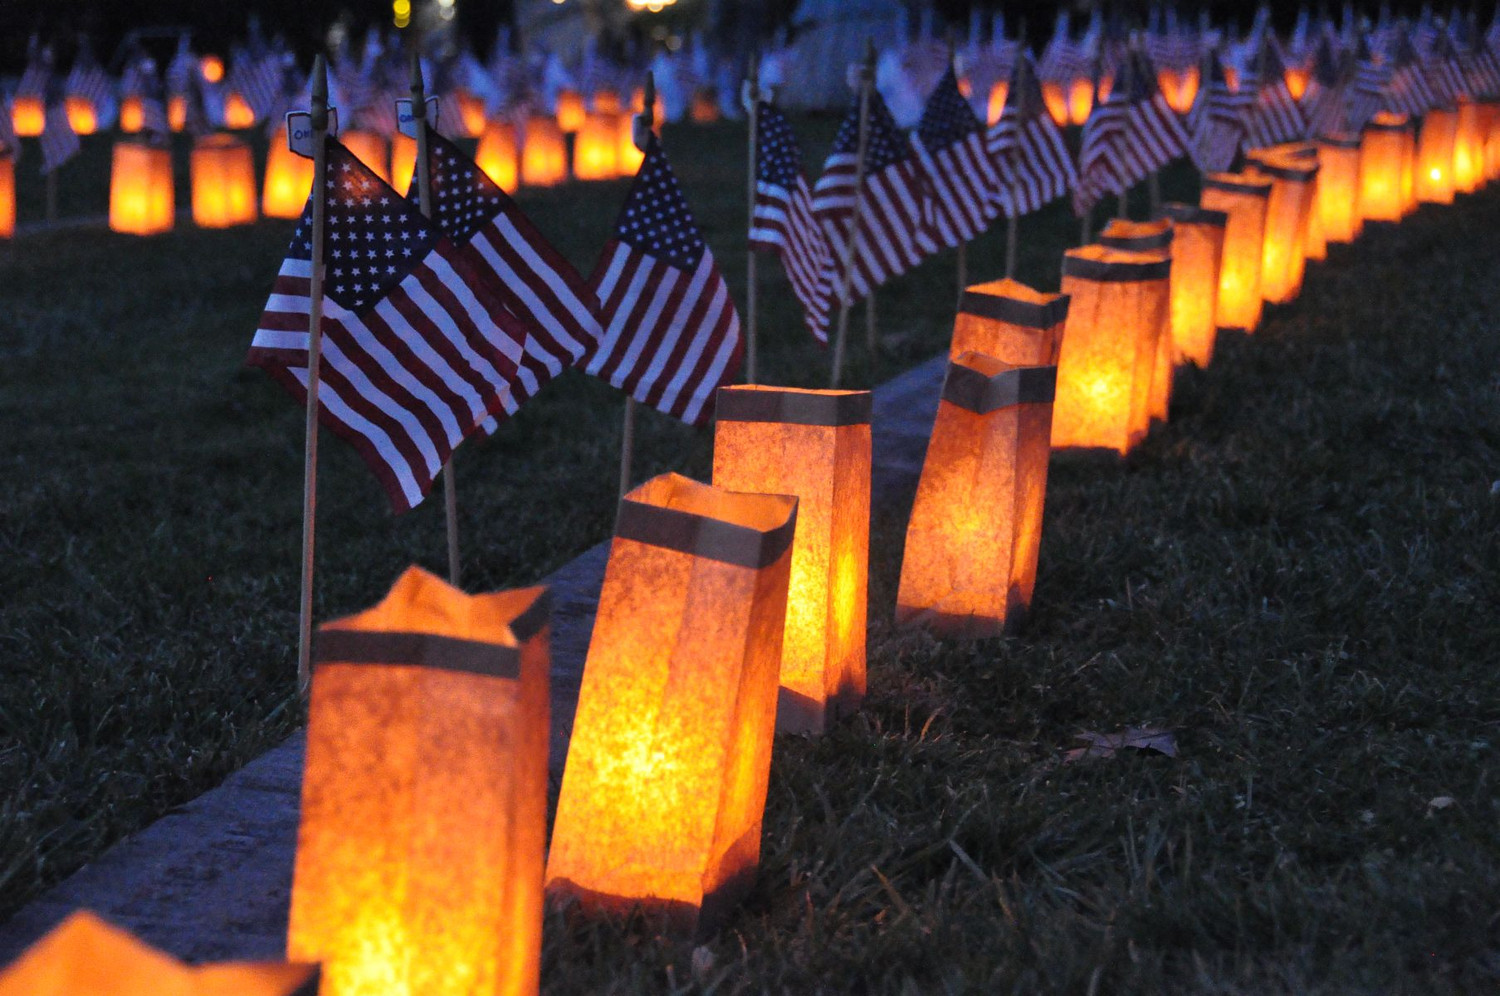 In Honor of the Soldiers and Civilians of the American Civil War